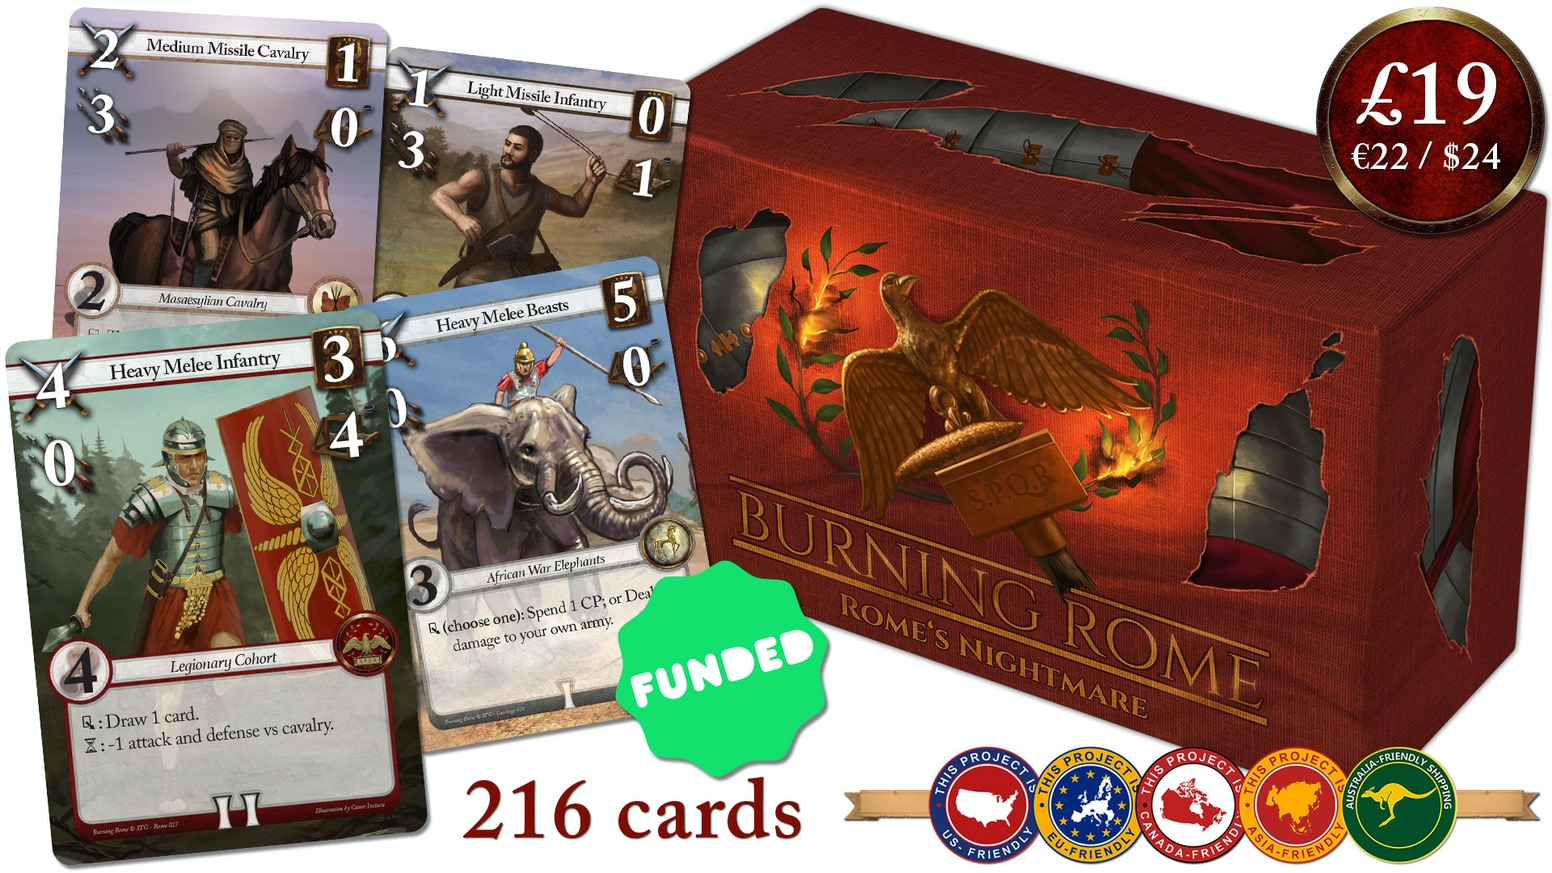 Will you save Rome, or destroy her? A quick tactical card game with ancient battles, deck construction and lots of replayability.